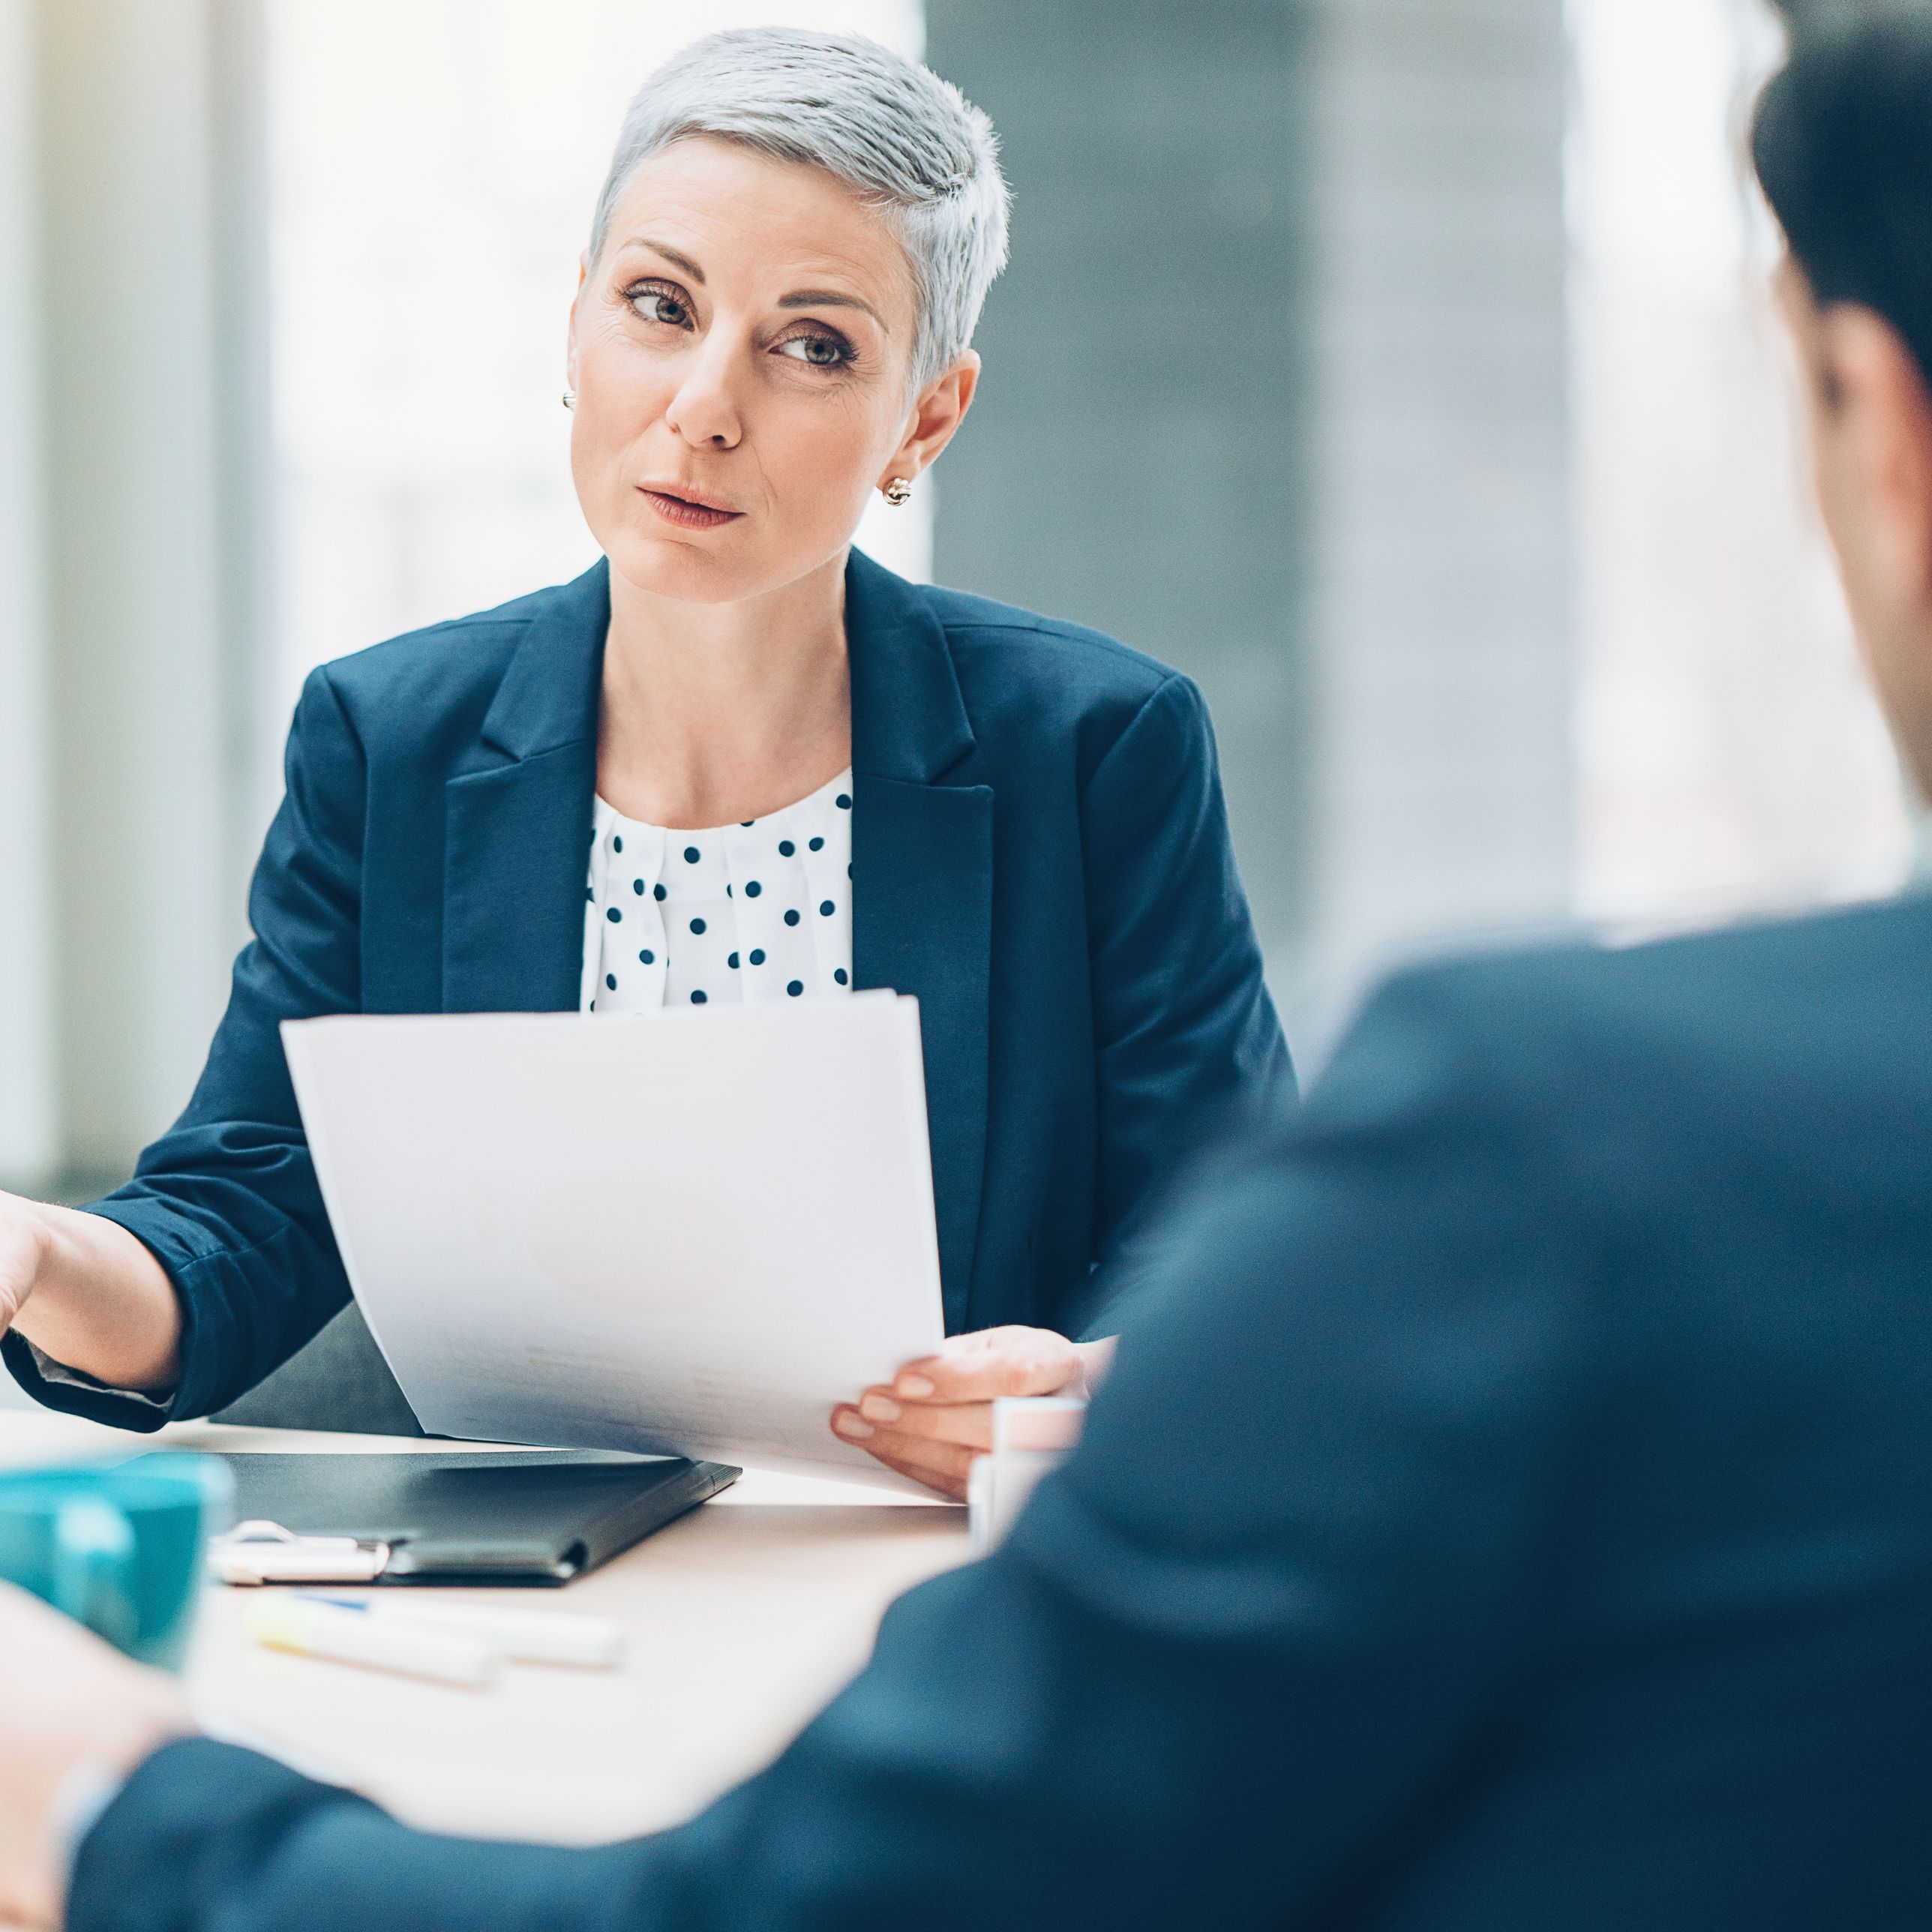 How to Answer Interview Questions About Being Laid-Off